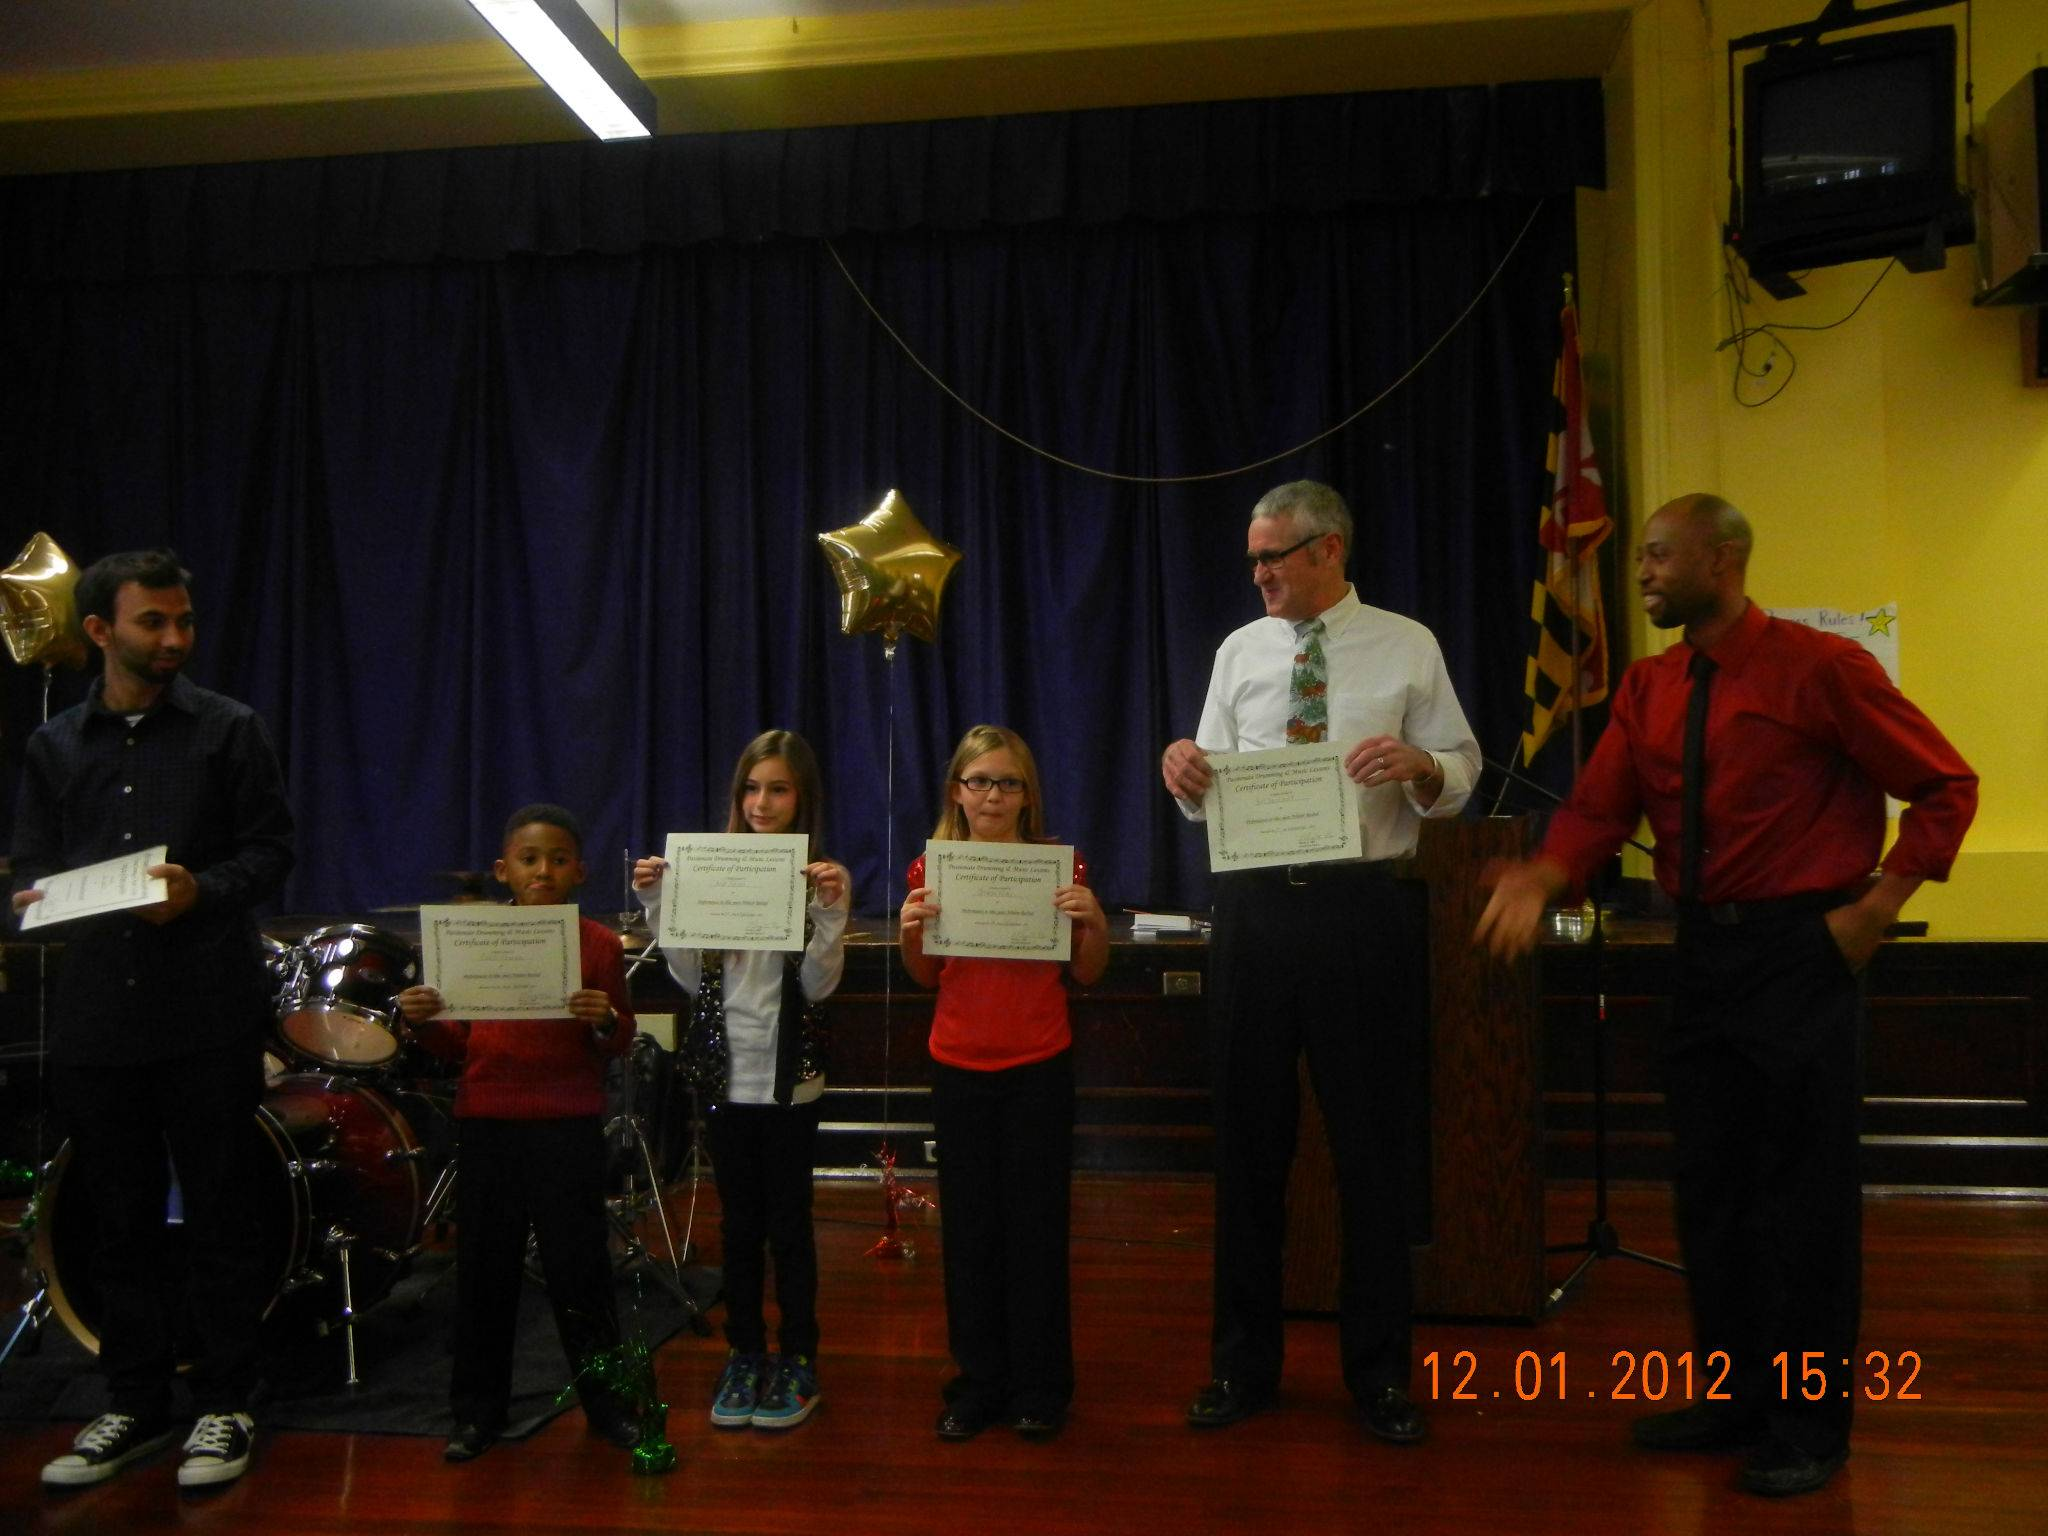 They all received performance certificates!